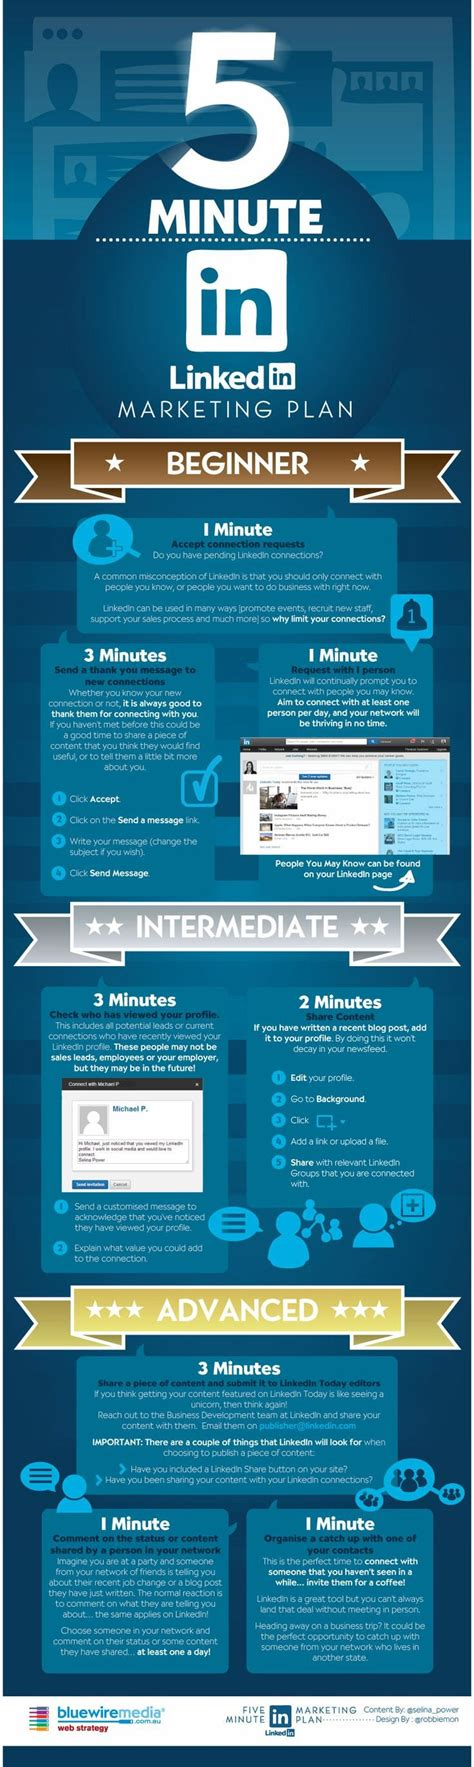 Expand your LinkedIn network - Smart Insights Infographic